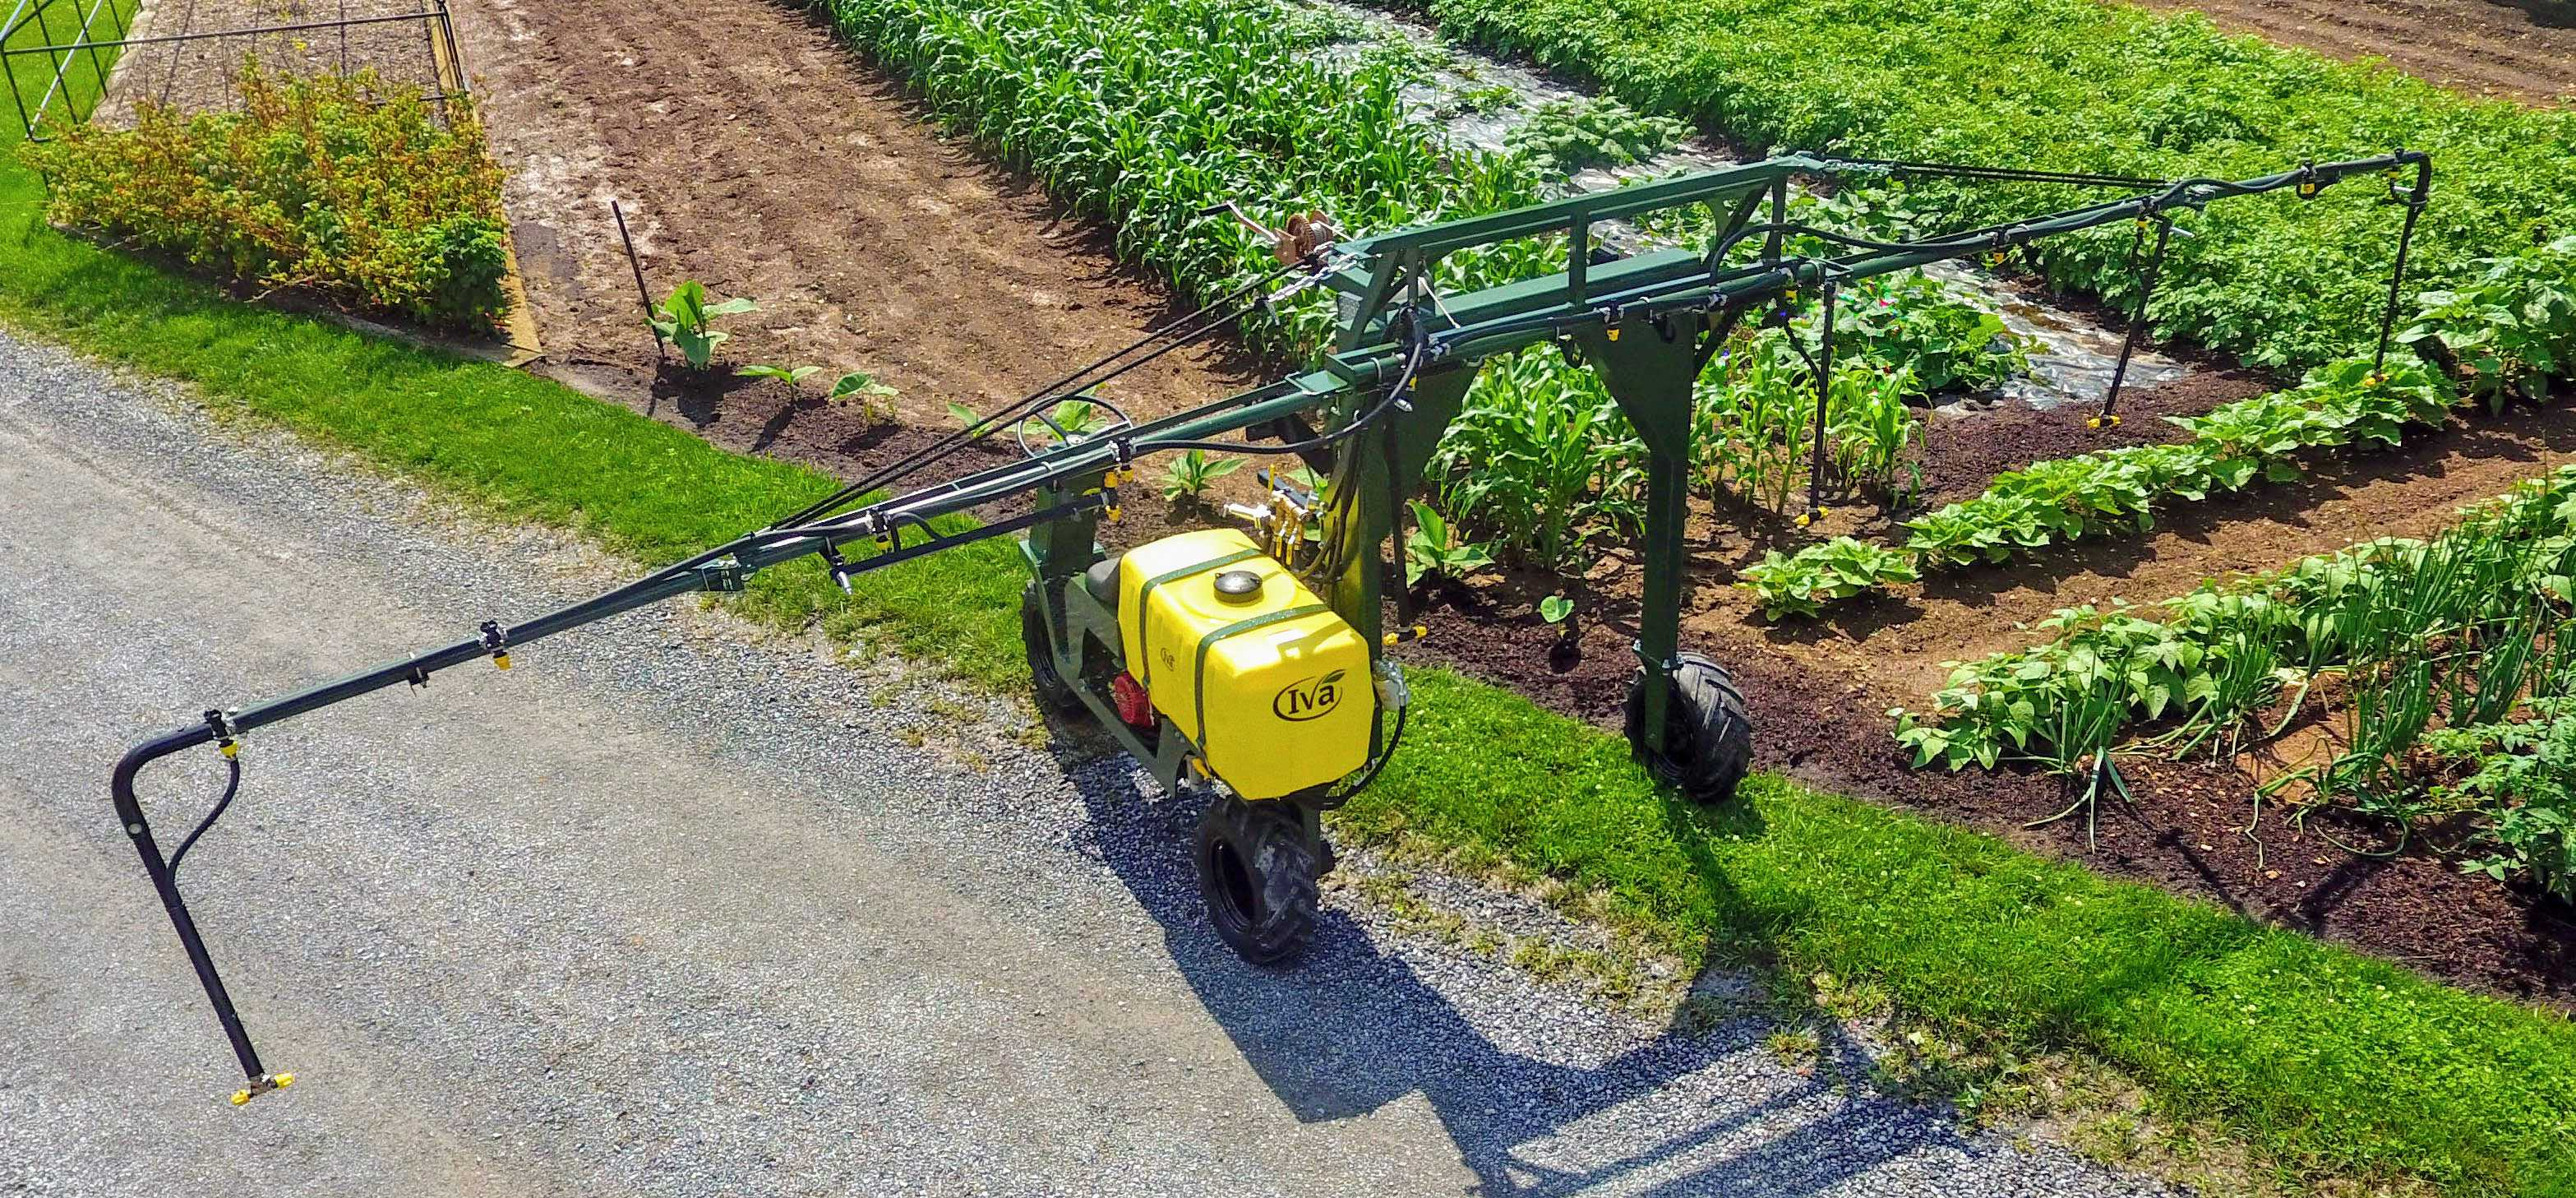 booms up to 30' wide on SP50 Self Propelled sprayer